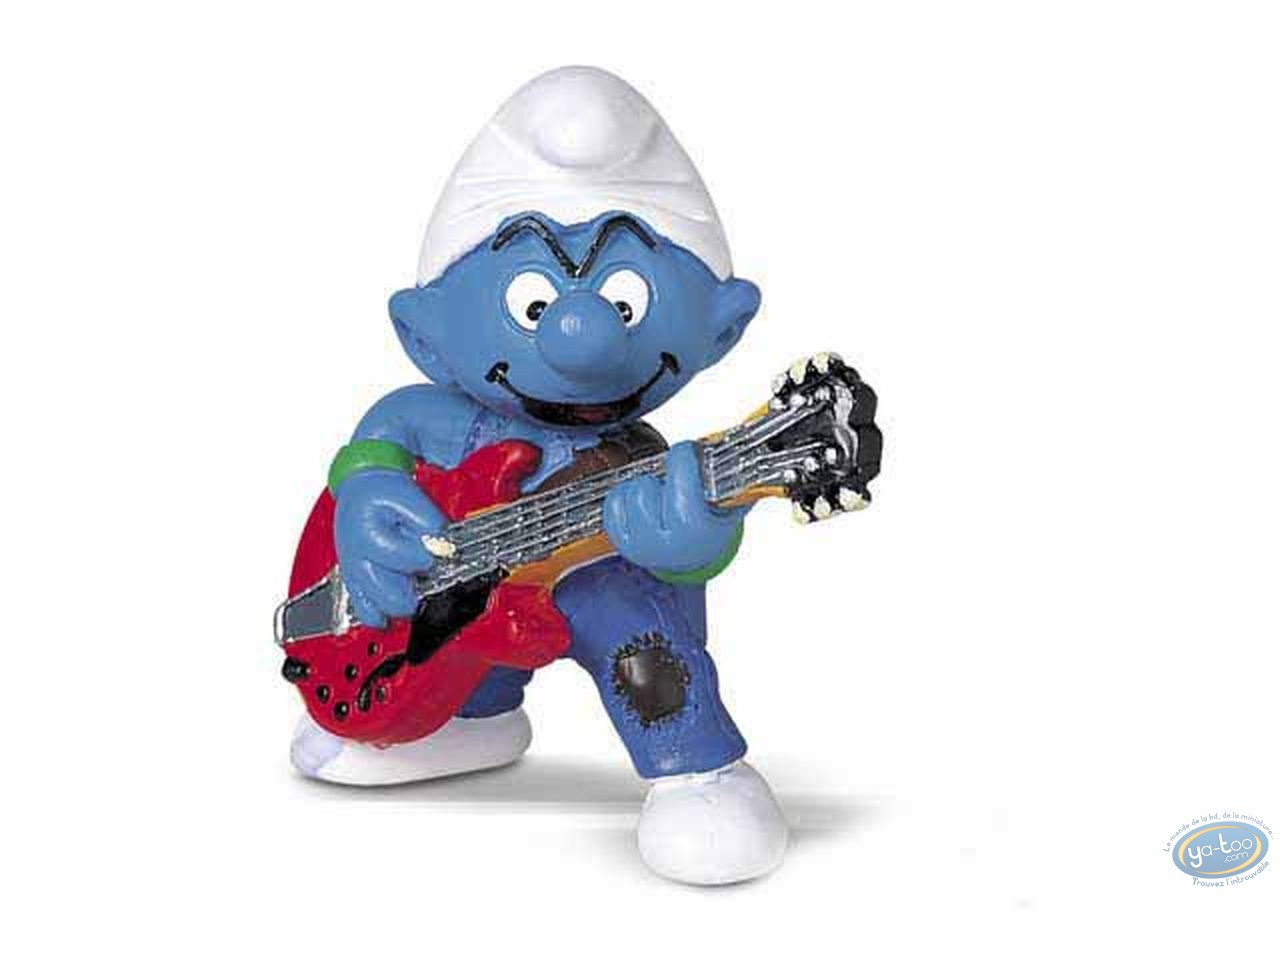 Plastic Figurine, Smurfs (The) : Smurf guitarist